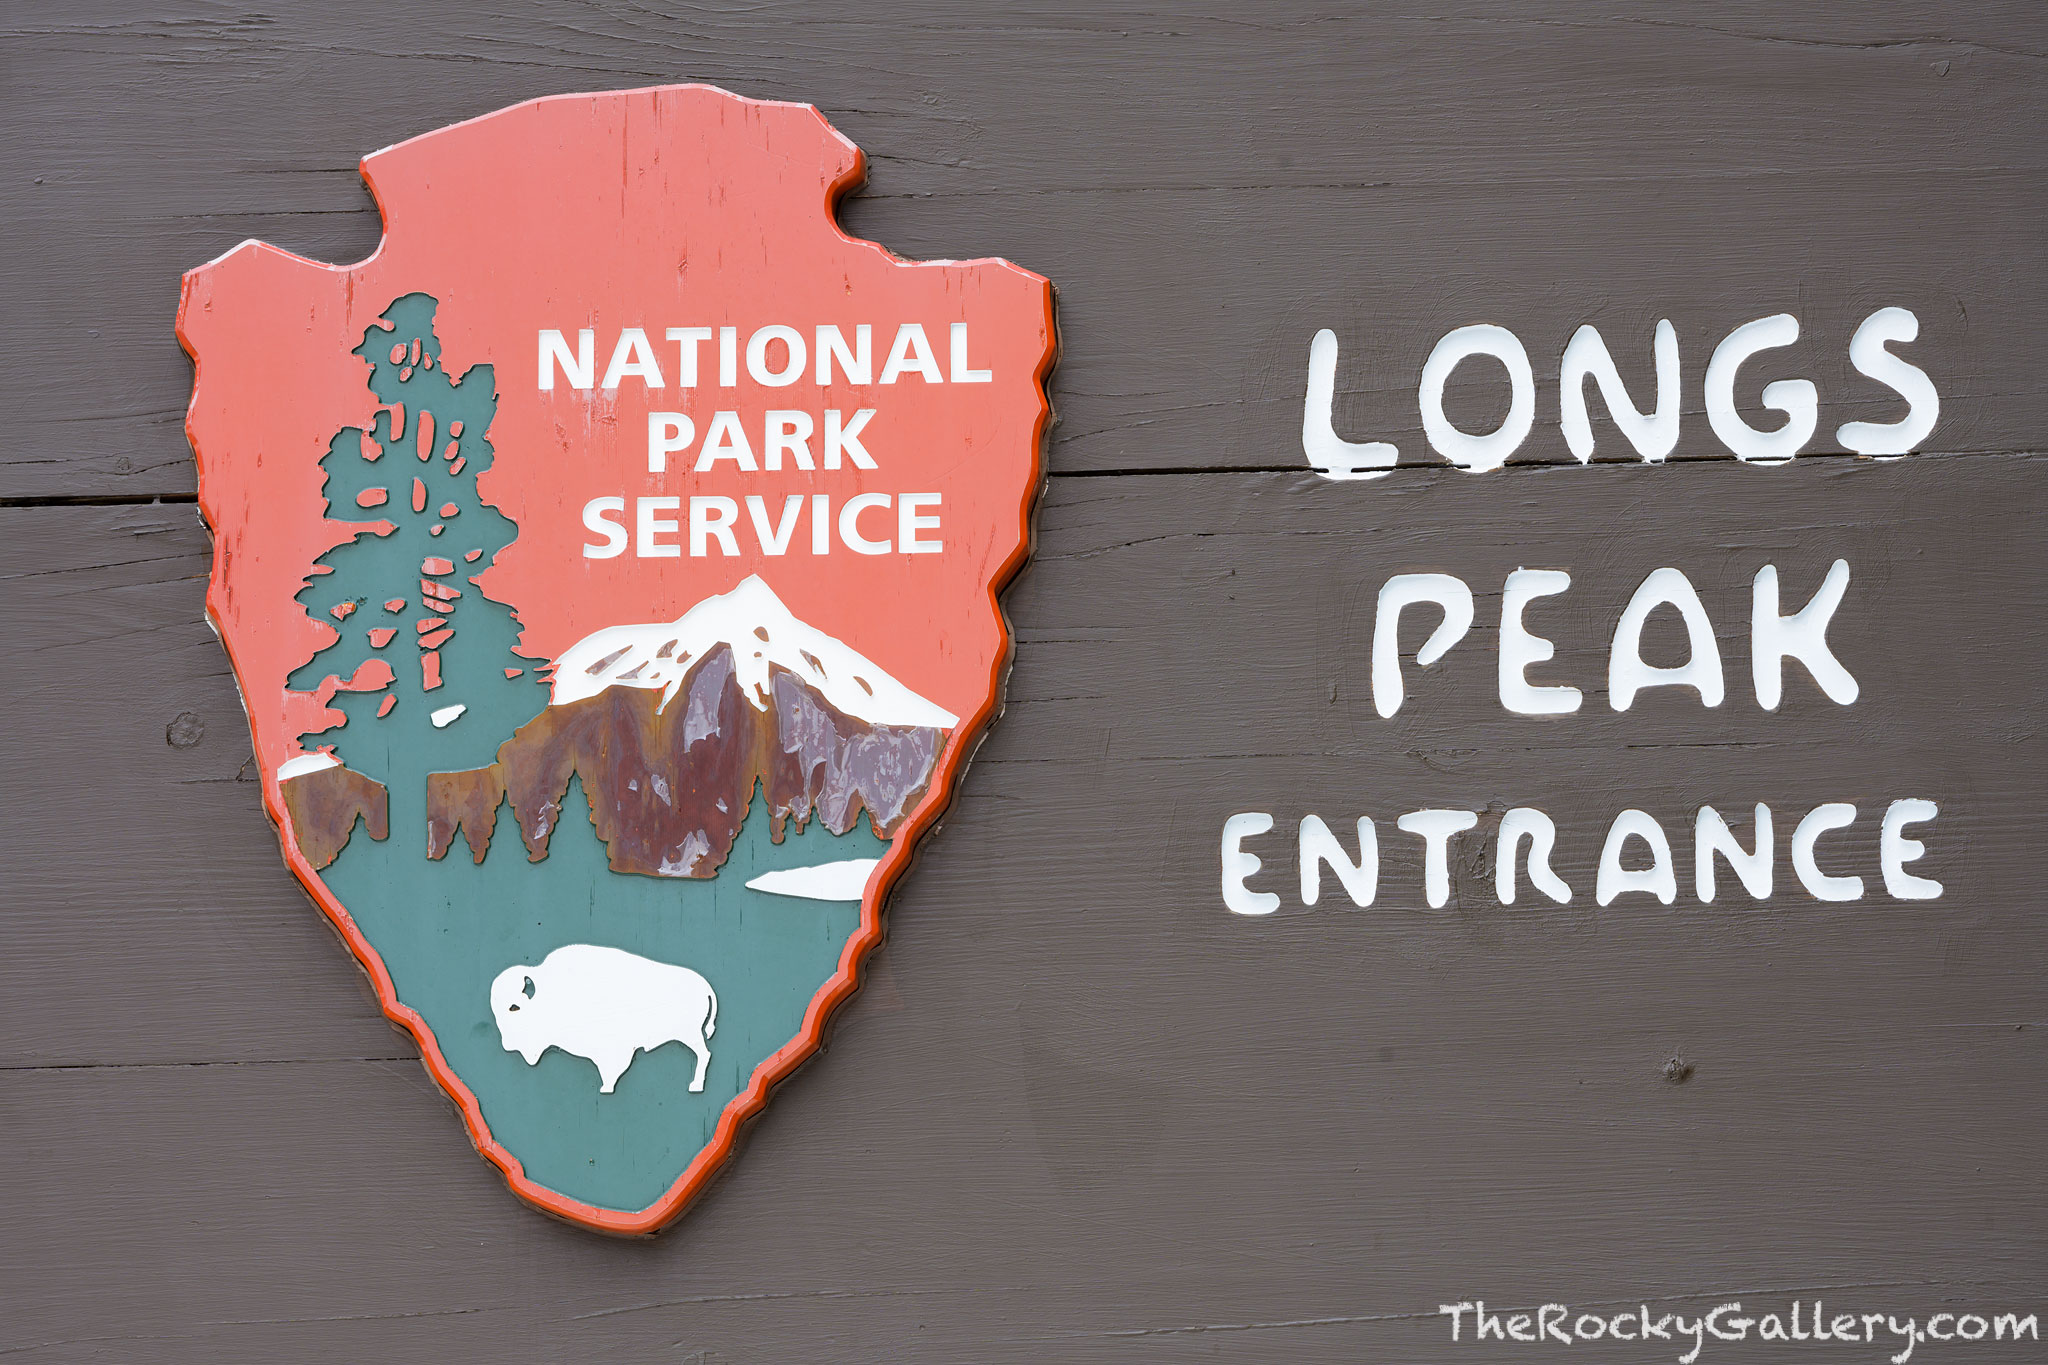 Longs Peak Trailhead,Longs Peak,Sign,Entry,Tahosa Valley,Highway 7,Hiking,Climbing,Colorado,14er,RMNP,Rocky Mountain National Park,Photography,Landscape,hand of man,NPS,Nationaln Park Service, photo